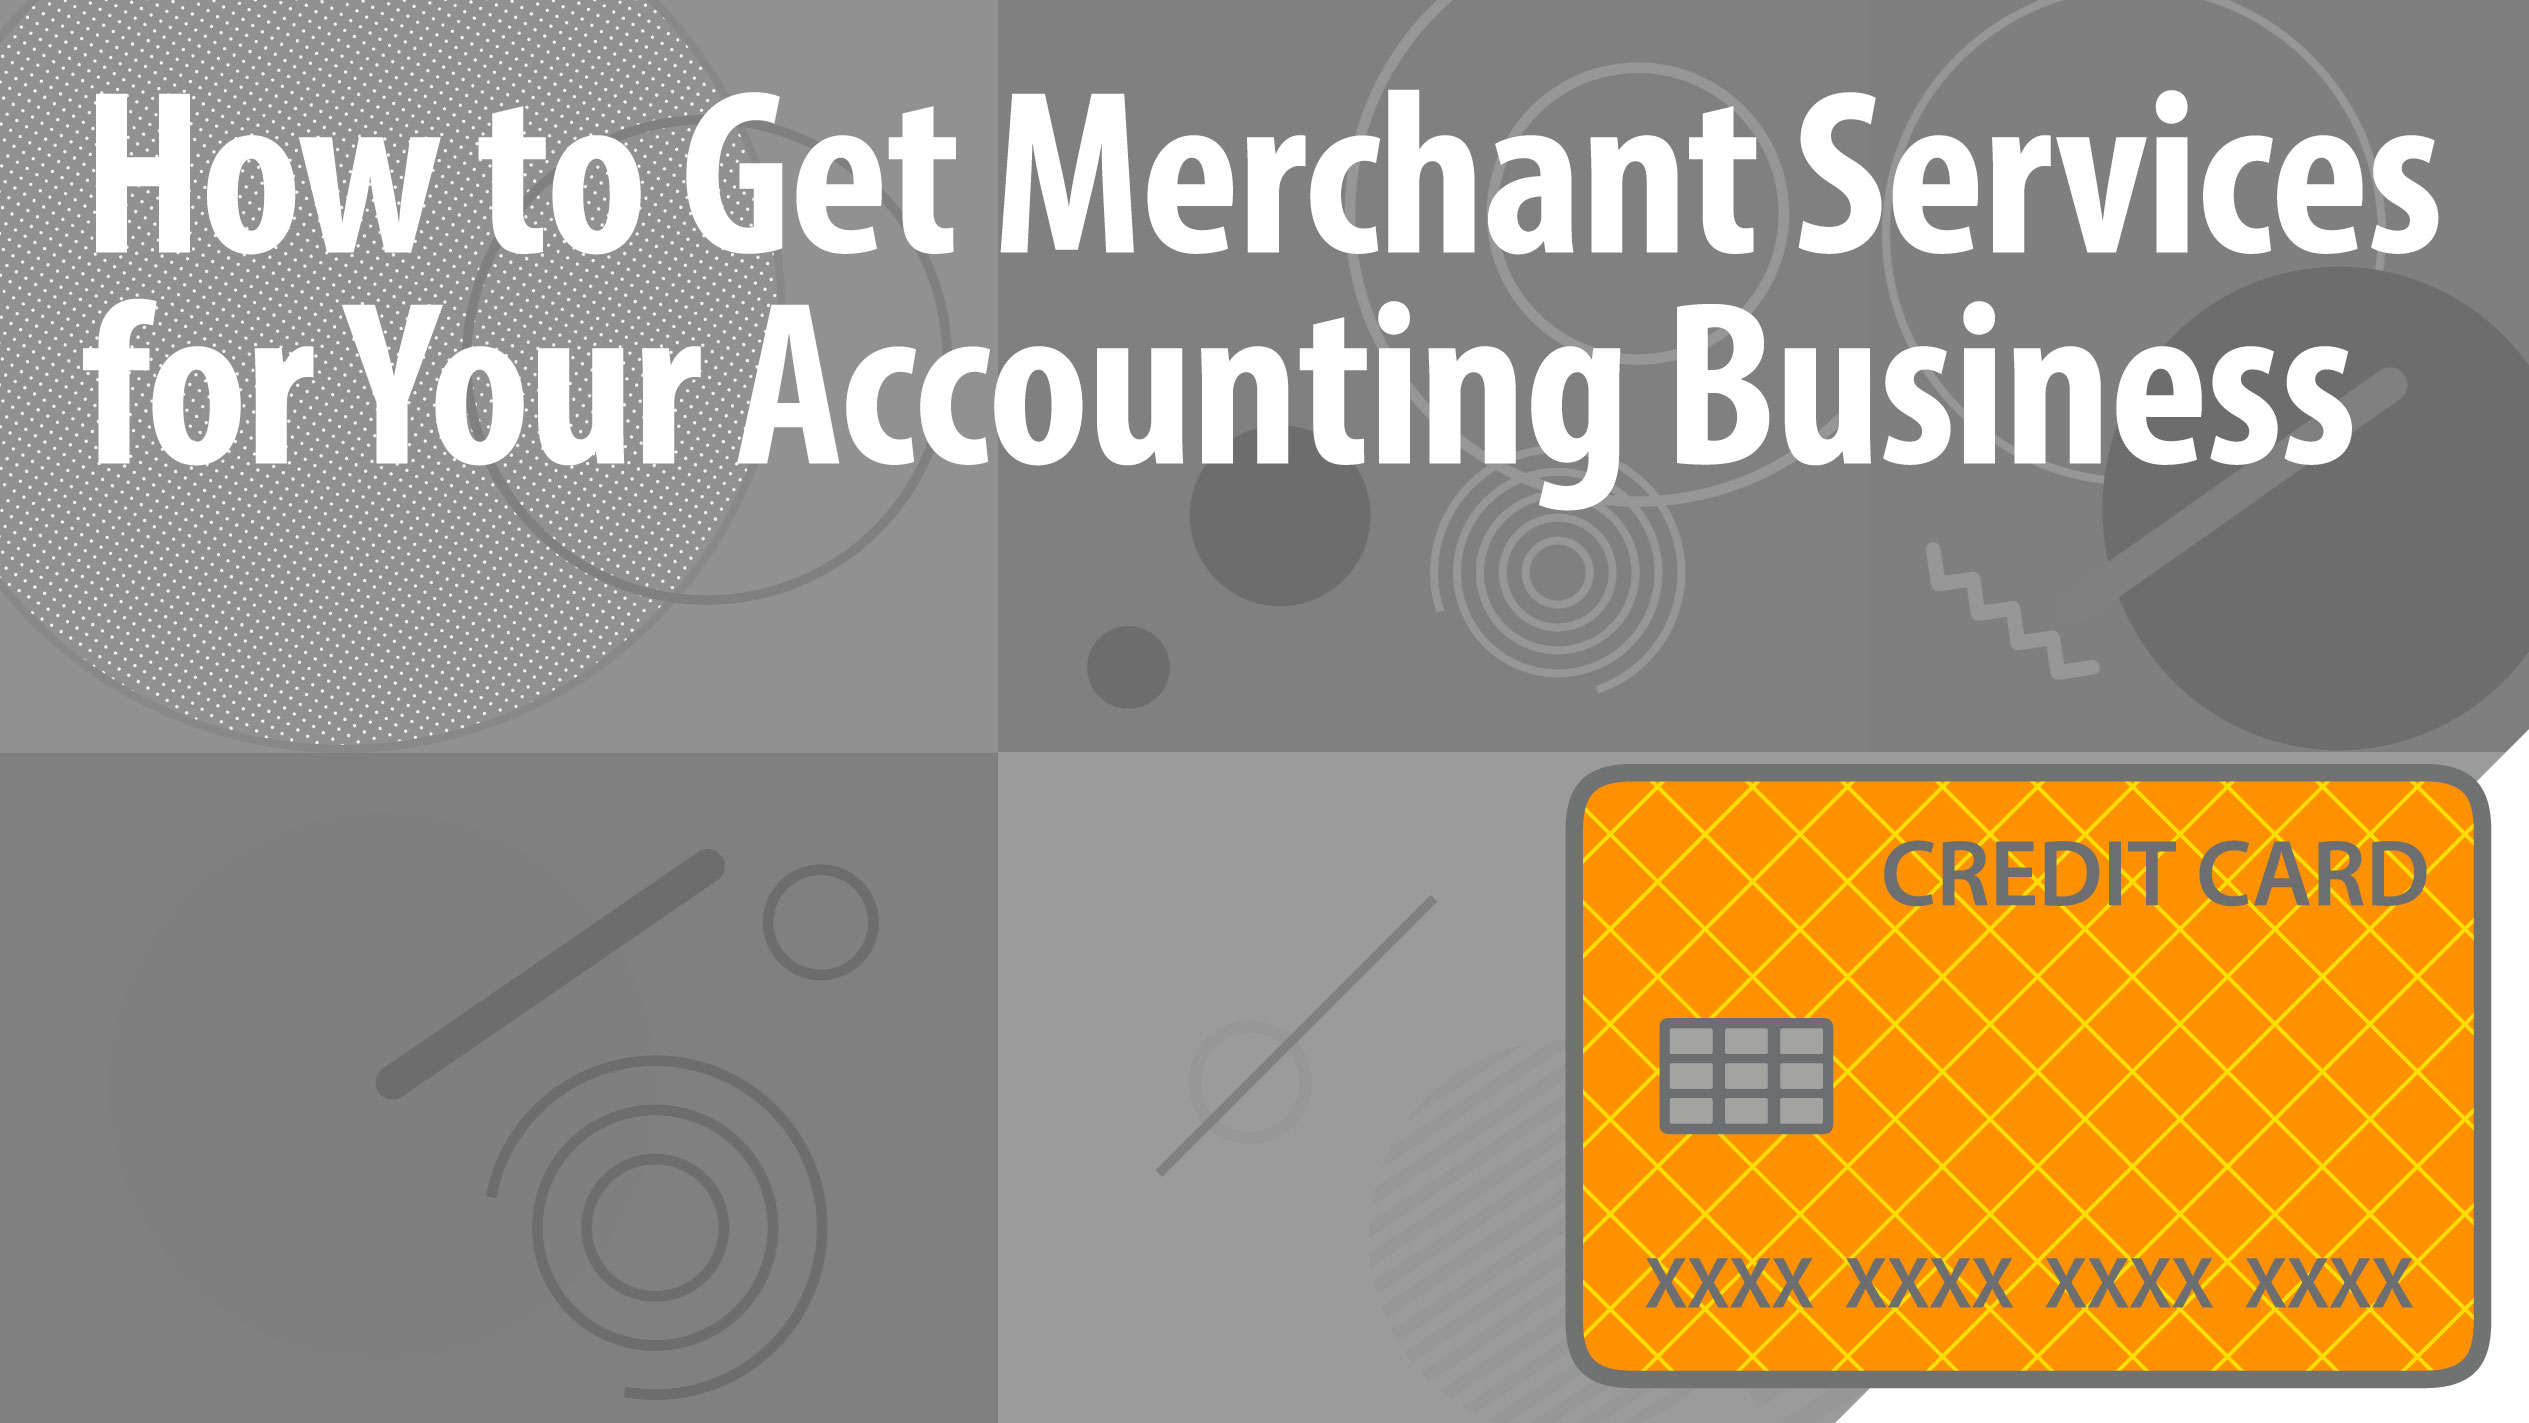 How to Get Merchant Services for Your Accounting Business